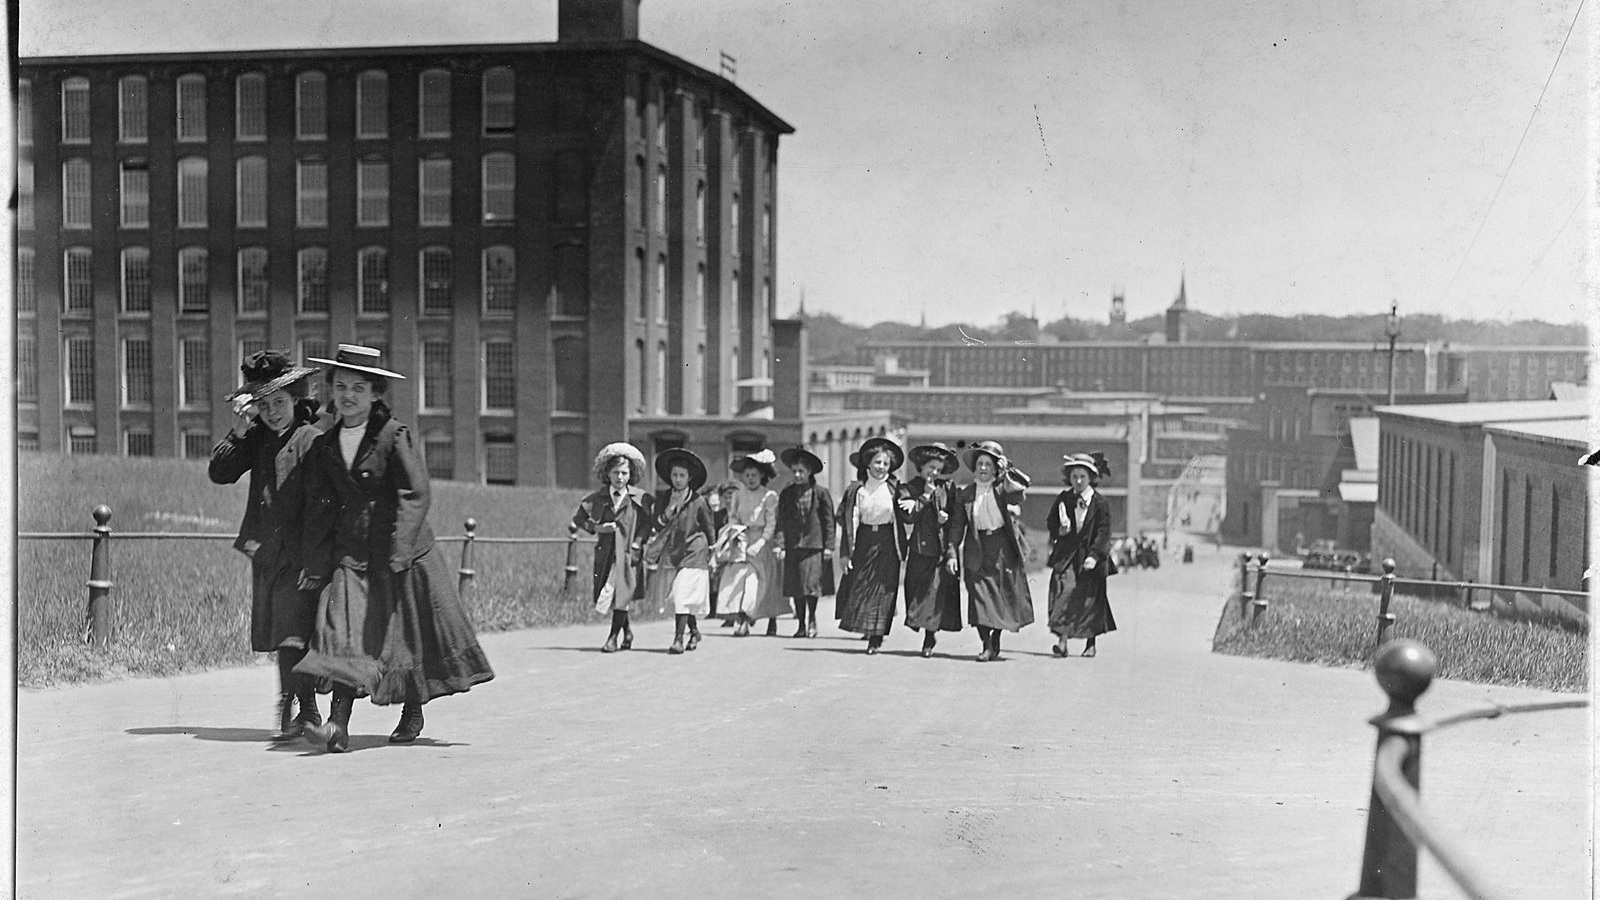 1600px-Some_of_the_girls_who_work_in_Amoskeag_Mills._Manchester,_N.H._-_NARA_-_523201.jpg